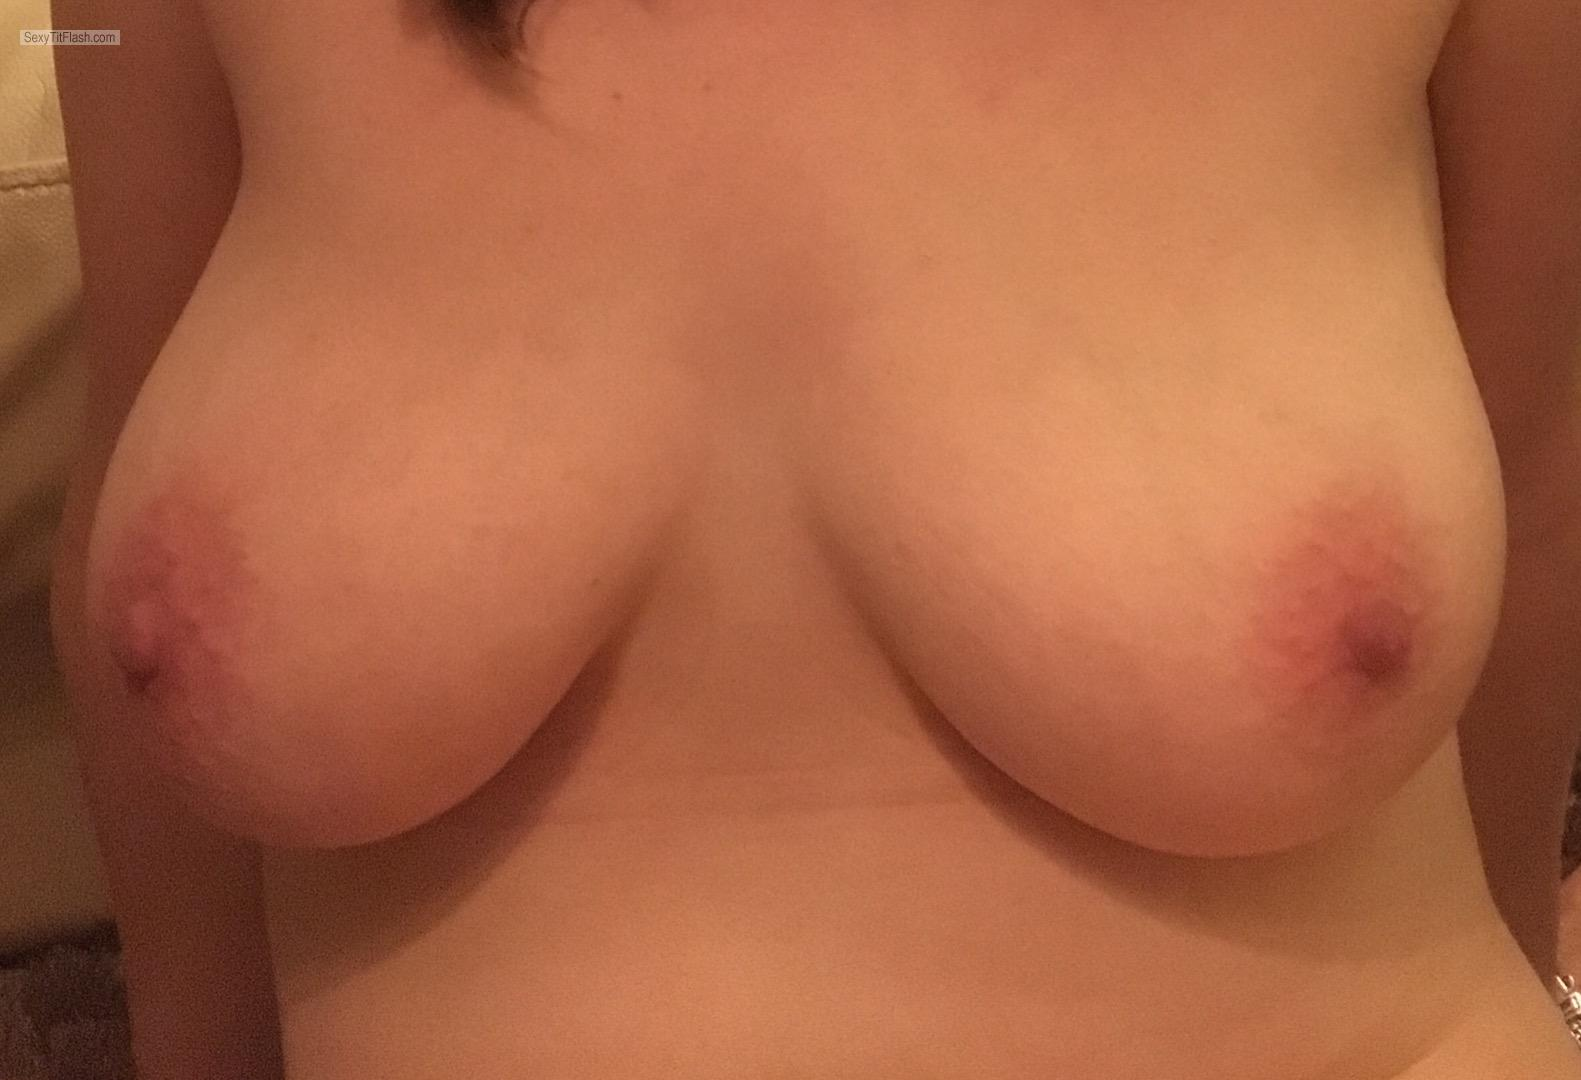 Tit Flash: Wife's Medium Tits - Louise, Uk Wife from United Kingdom